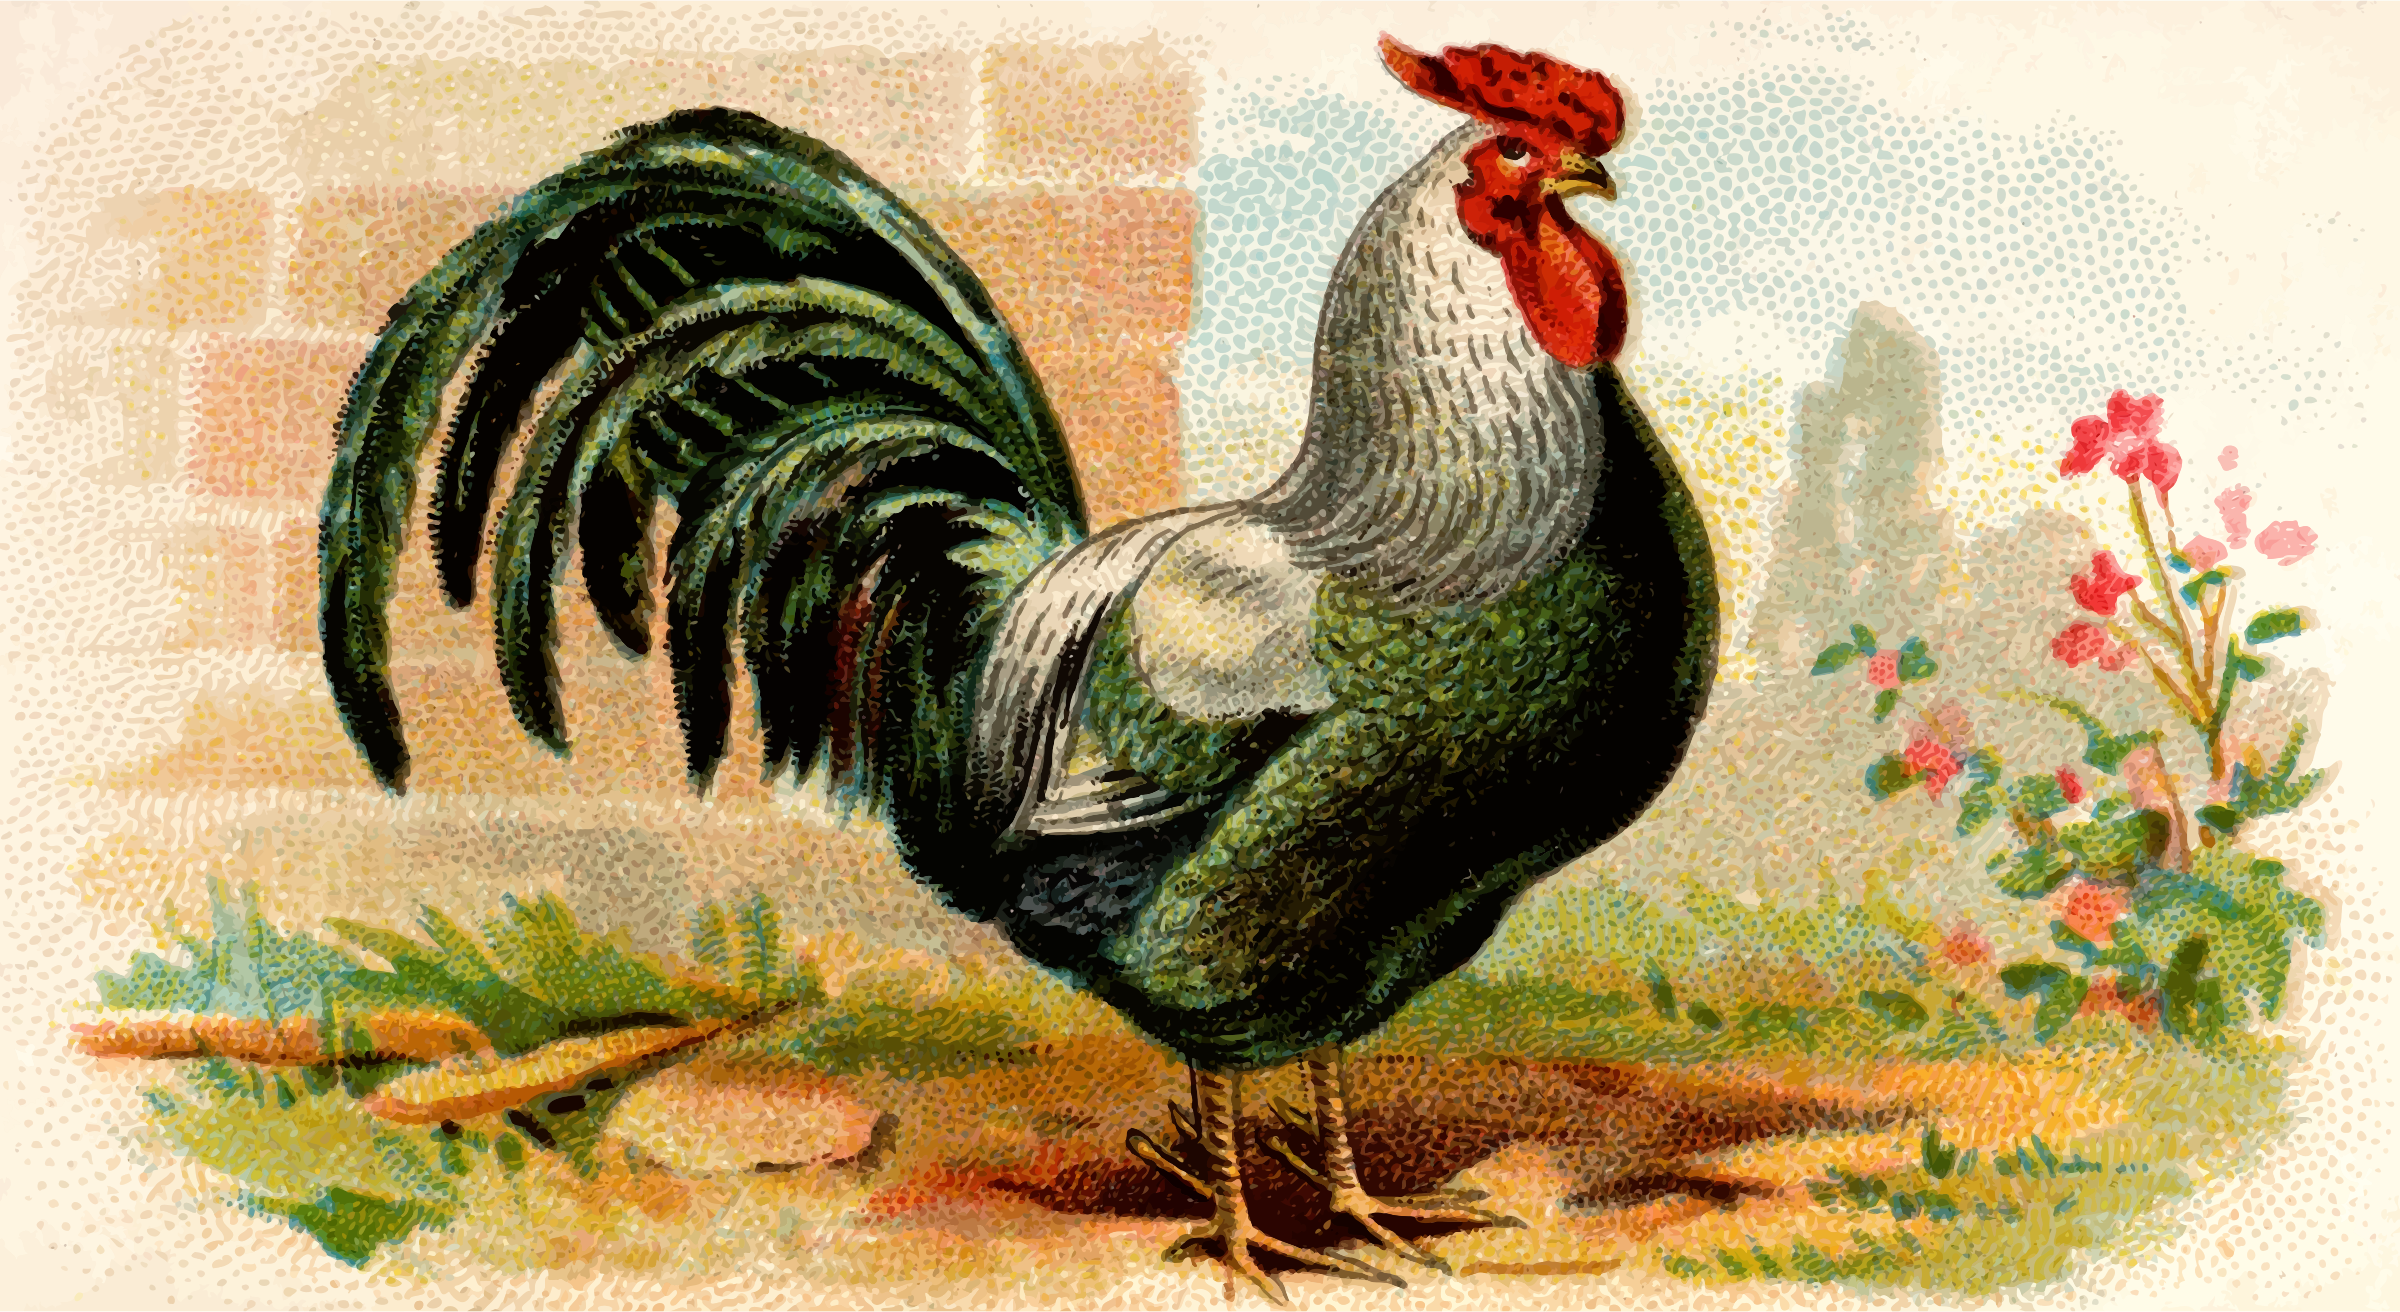 Cigarette card - Rose-Combed Dorking Cock by Firkin